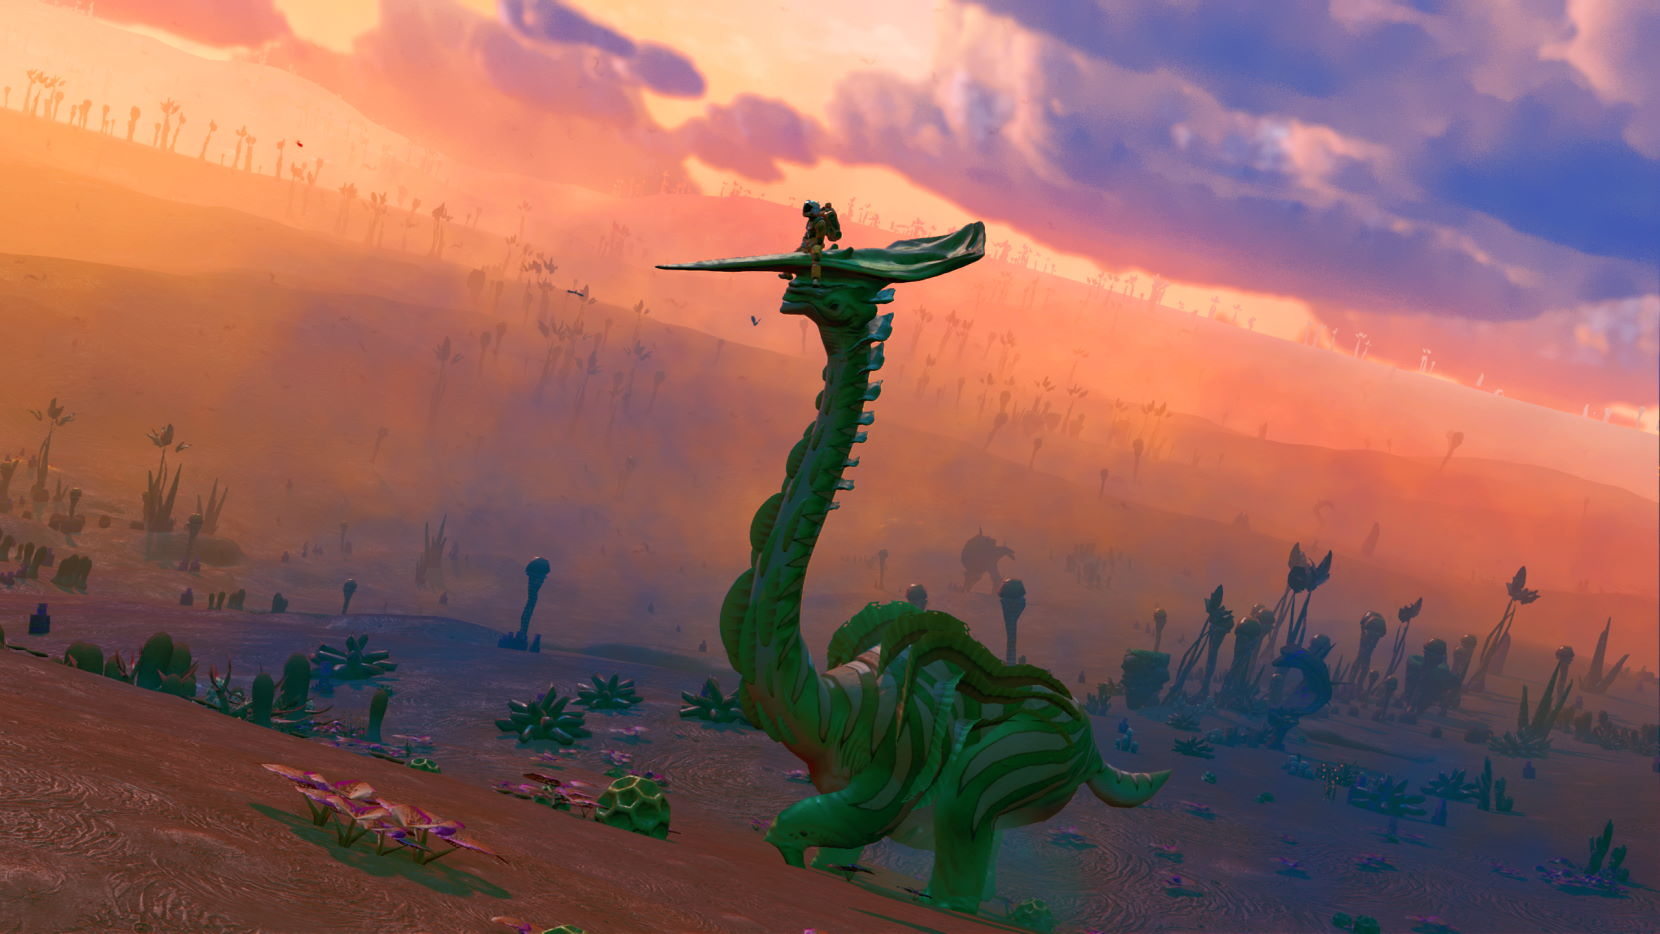 Rising a majestic diplo at sunset